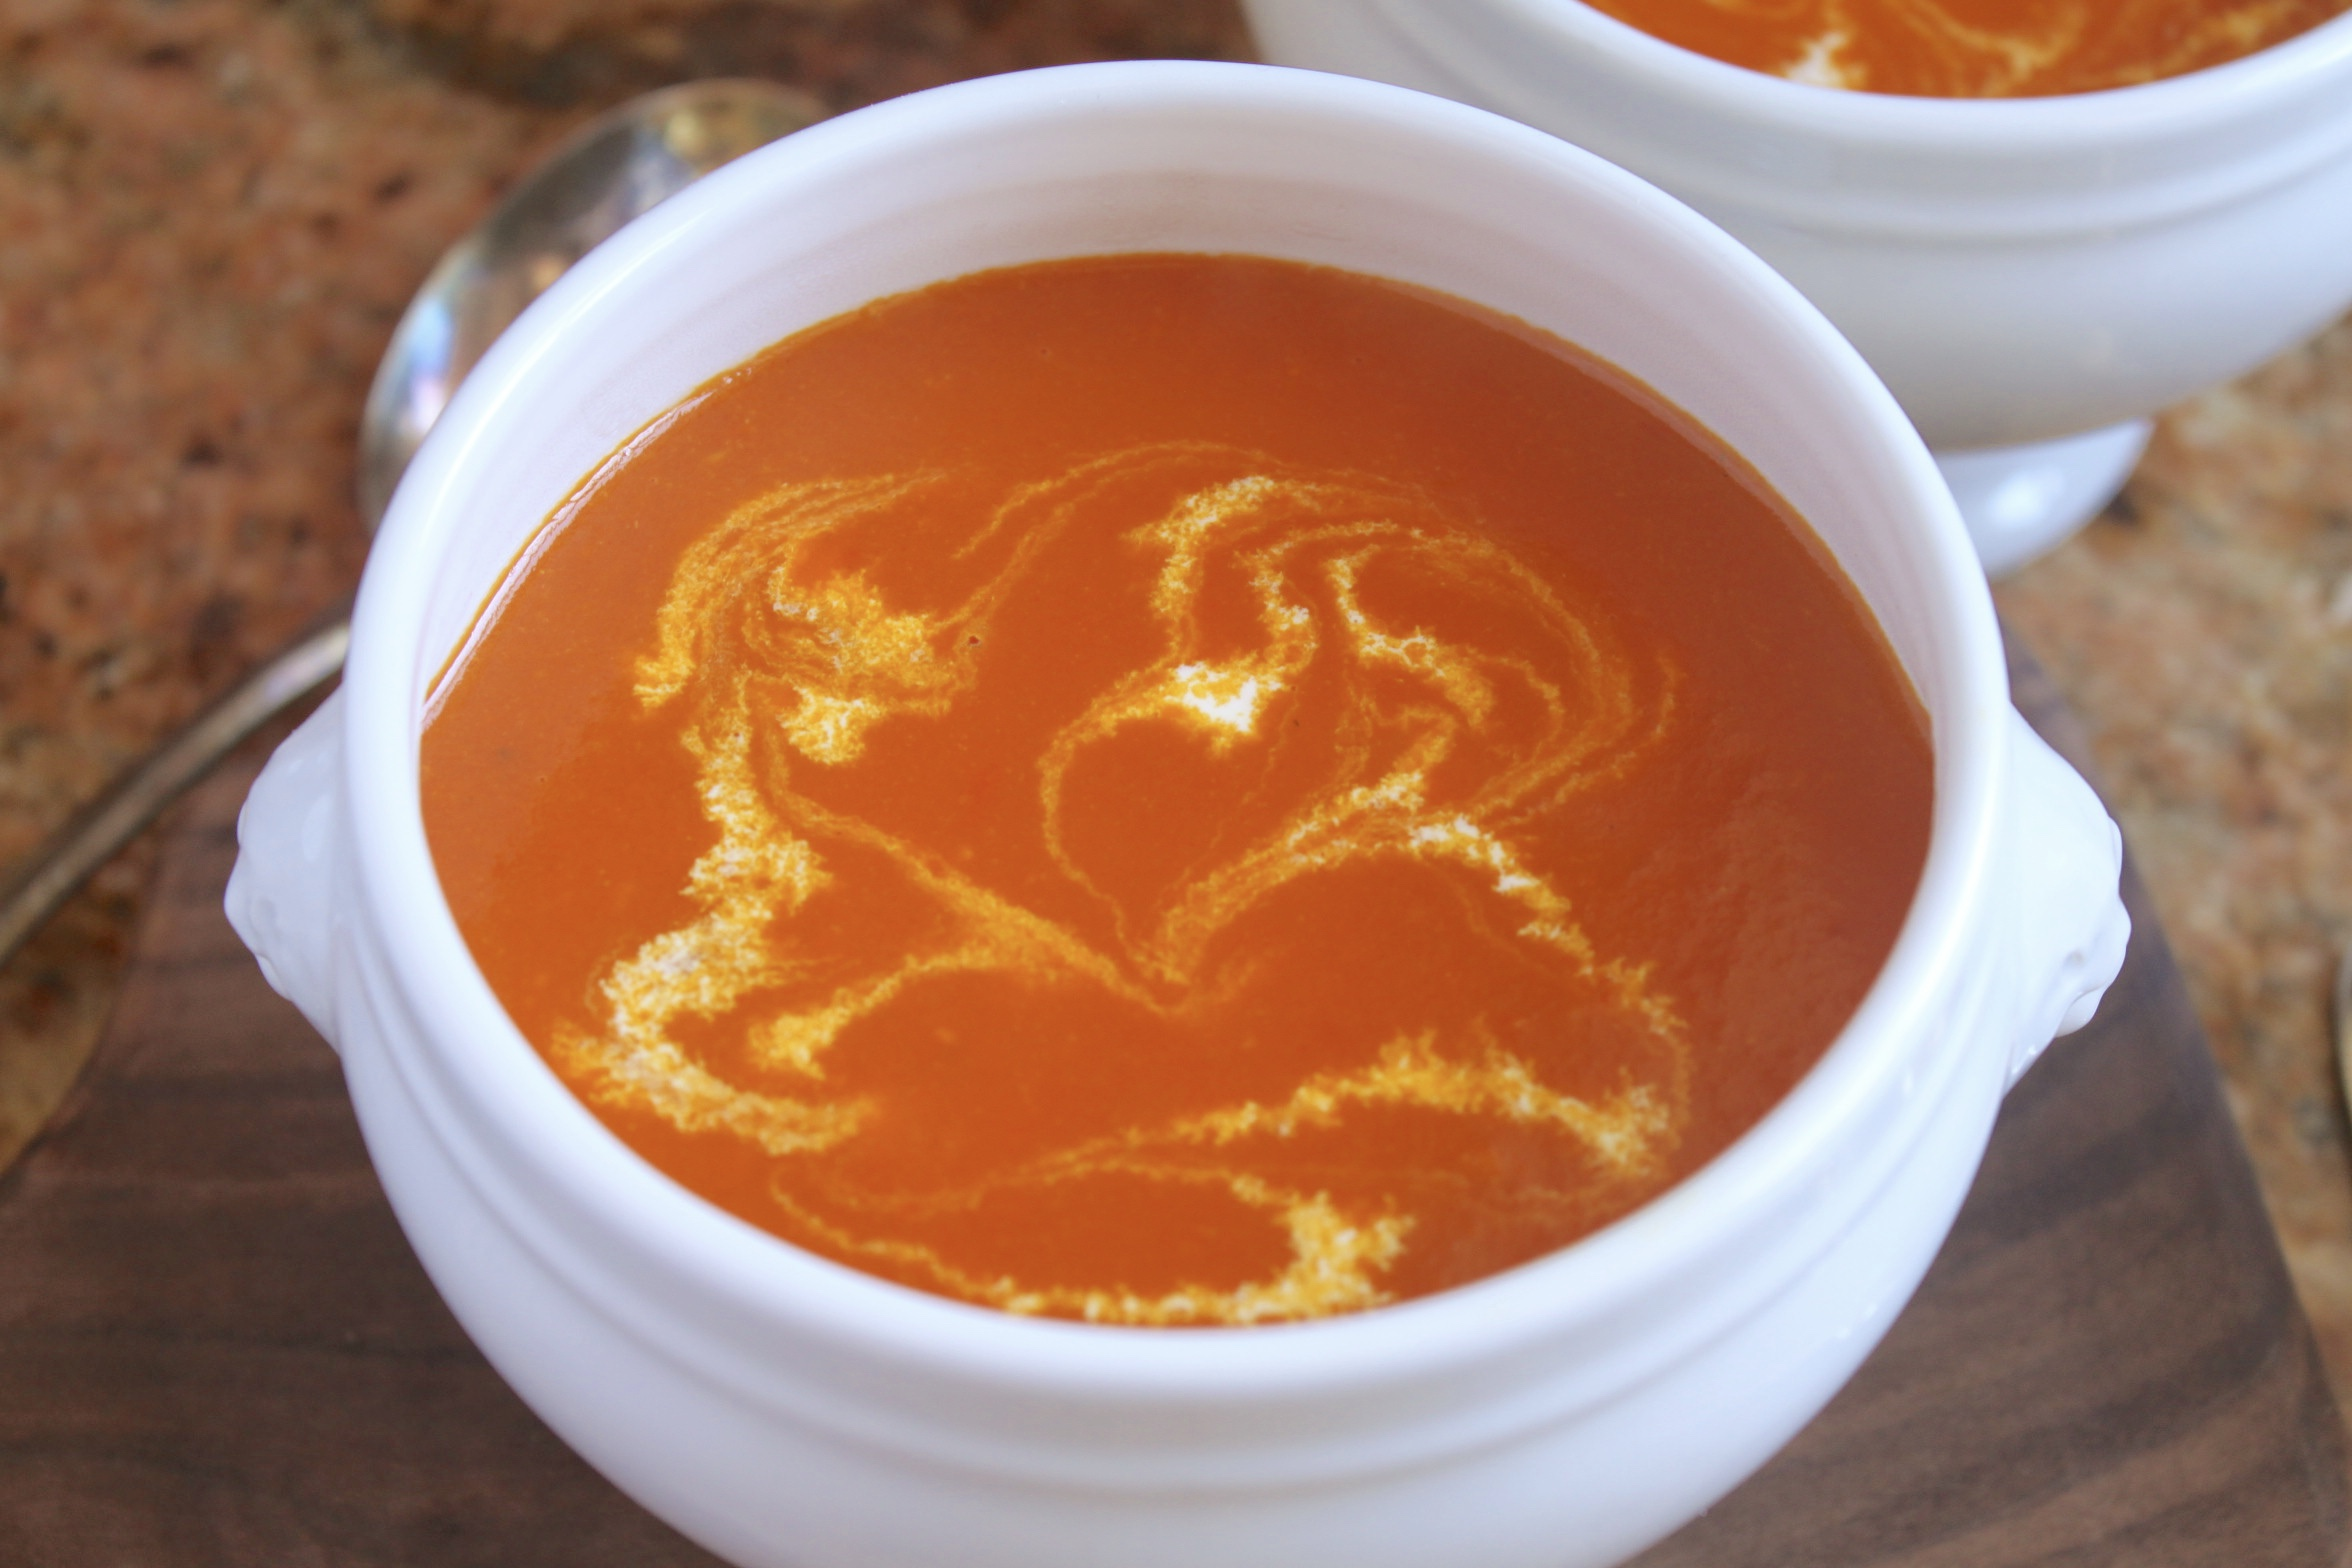 tomato turmeric soup in a bowl